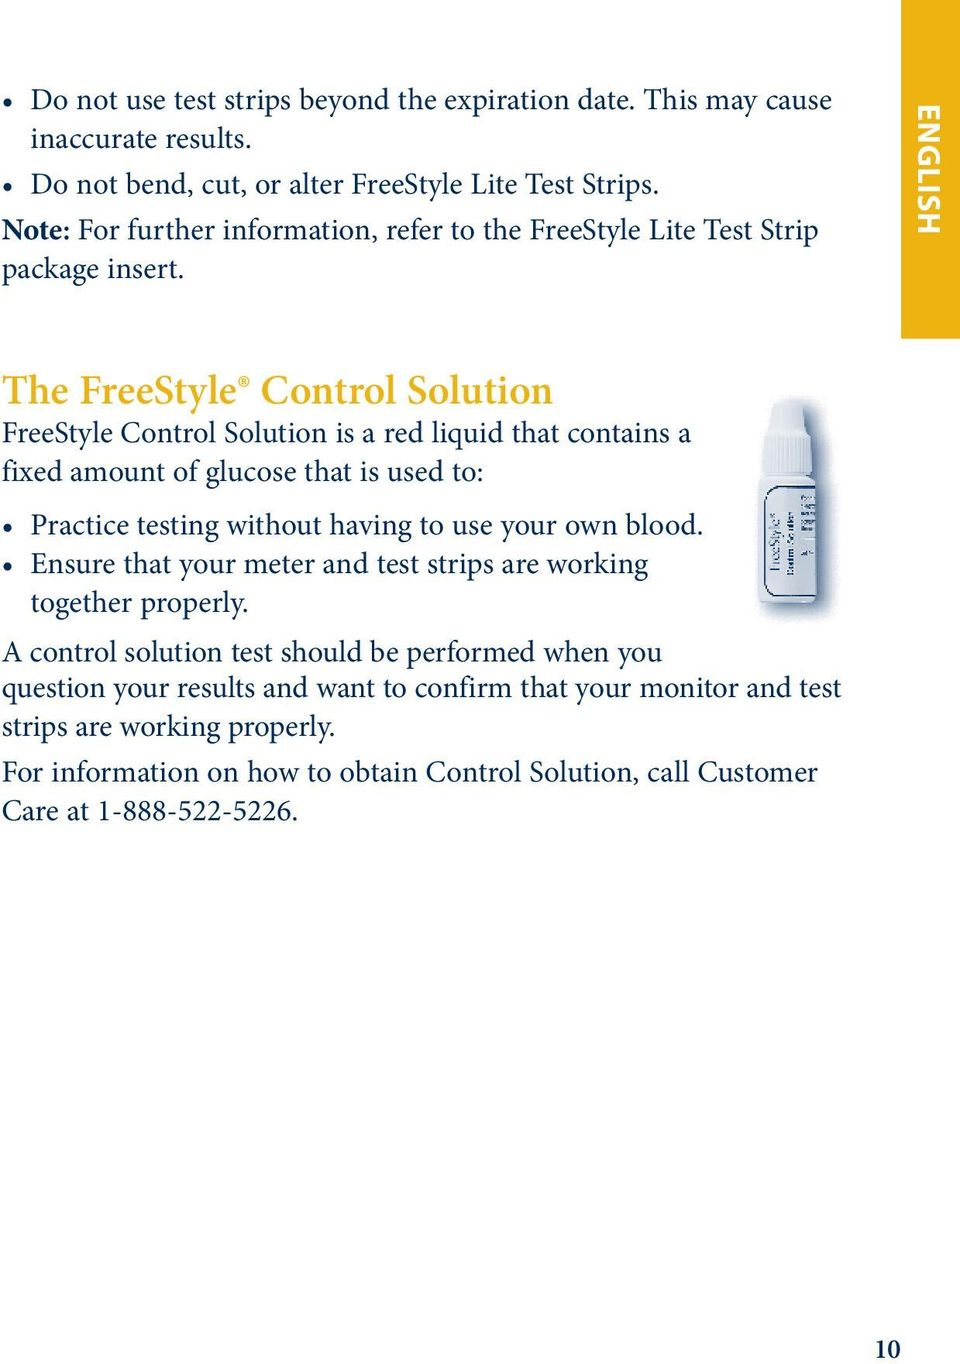 The FreeStyle Control Solution FreeStyle Control Solution is a red liquid that contains a fixed amount of glucose that is used to: Practice testing without having to use your own blood.